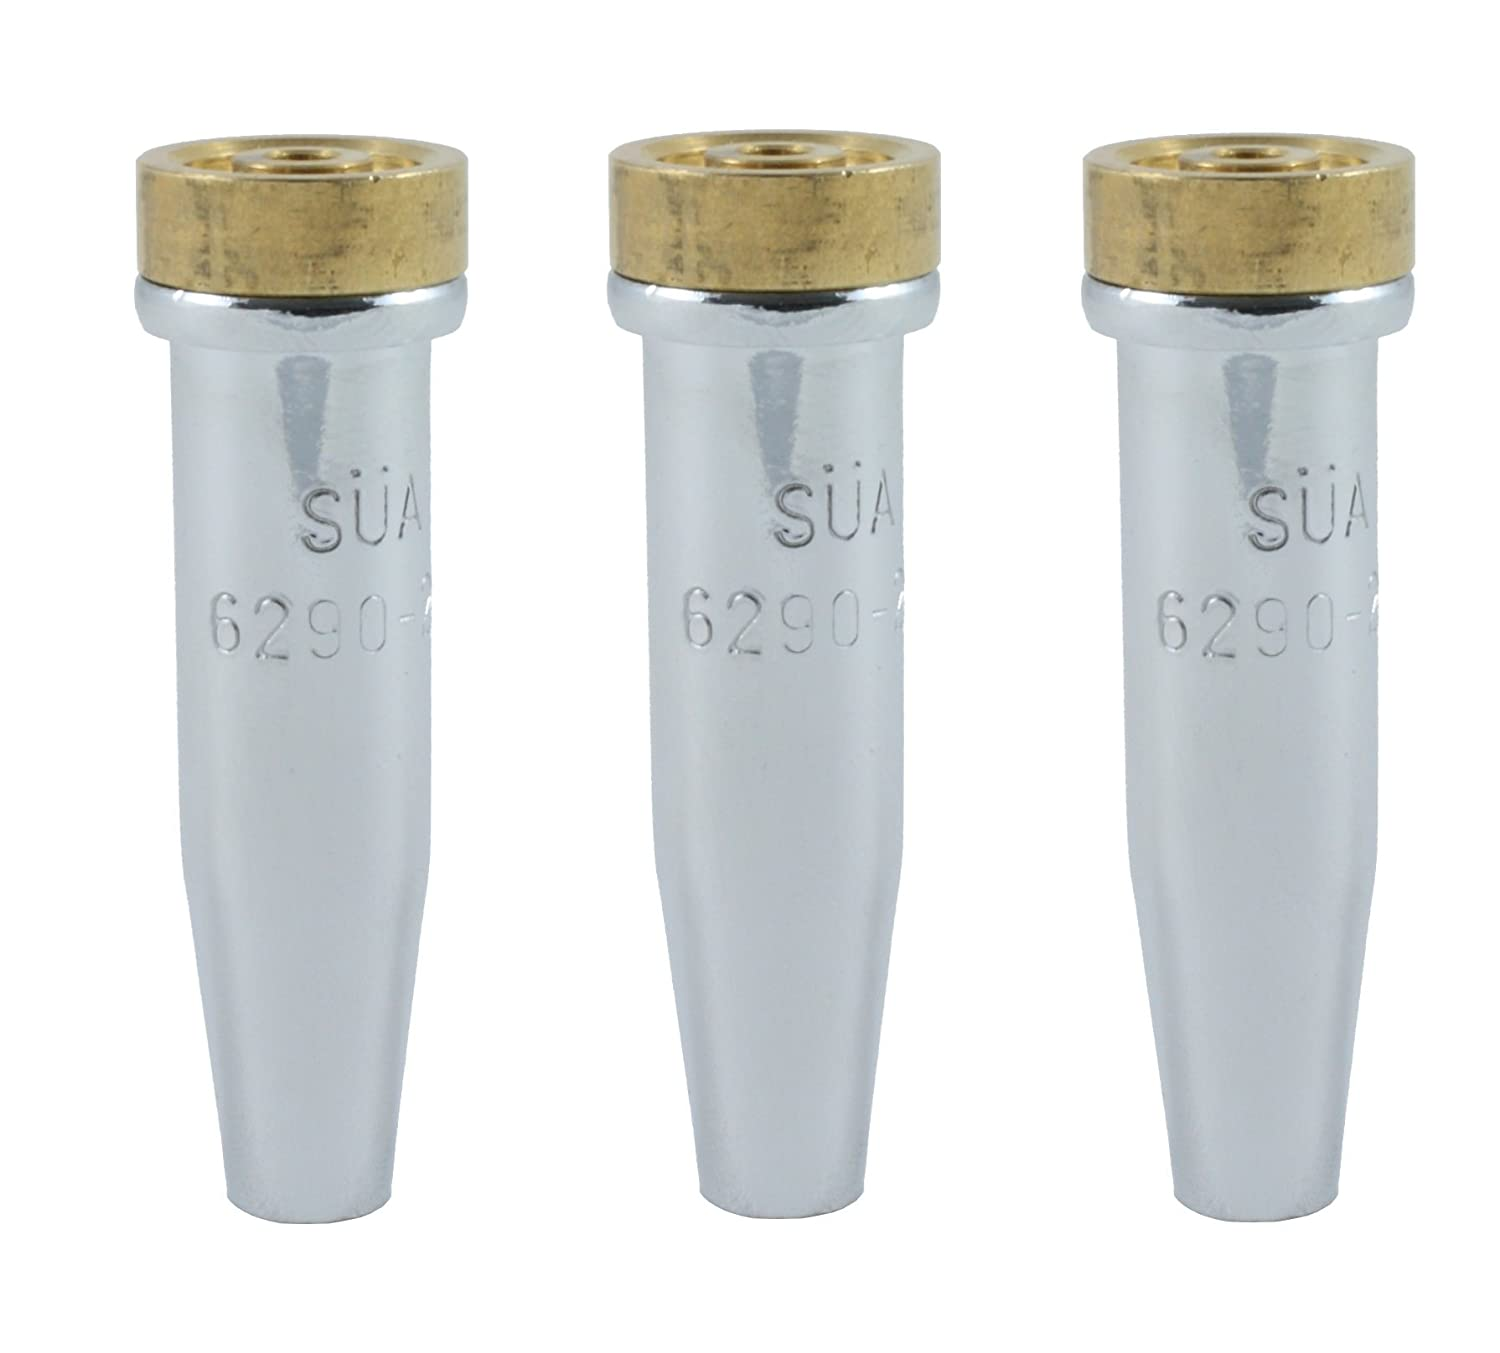 (3 PACK) SÜ A - 6290-NX Series Propane Cutting Tip - Compatible with Harris. Sizes: 4, 5 and 6 SÜA